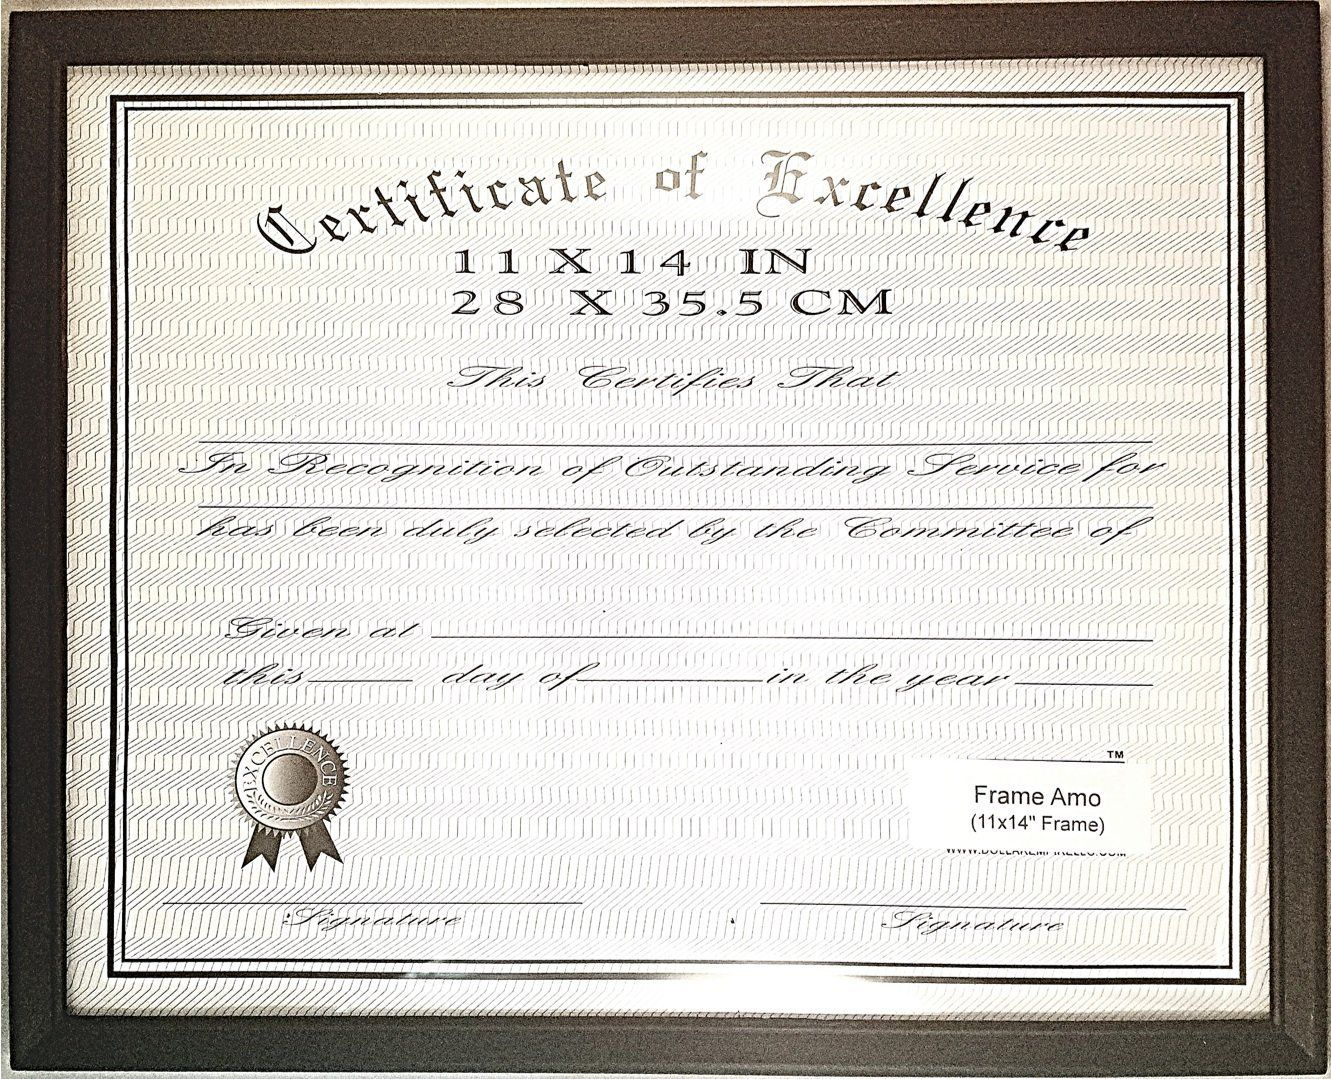 Economy Black 11x14 Document Certificate Frame, 0.625 inch Border ...